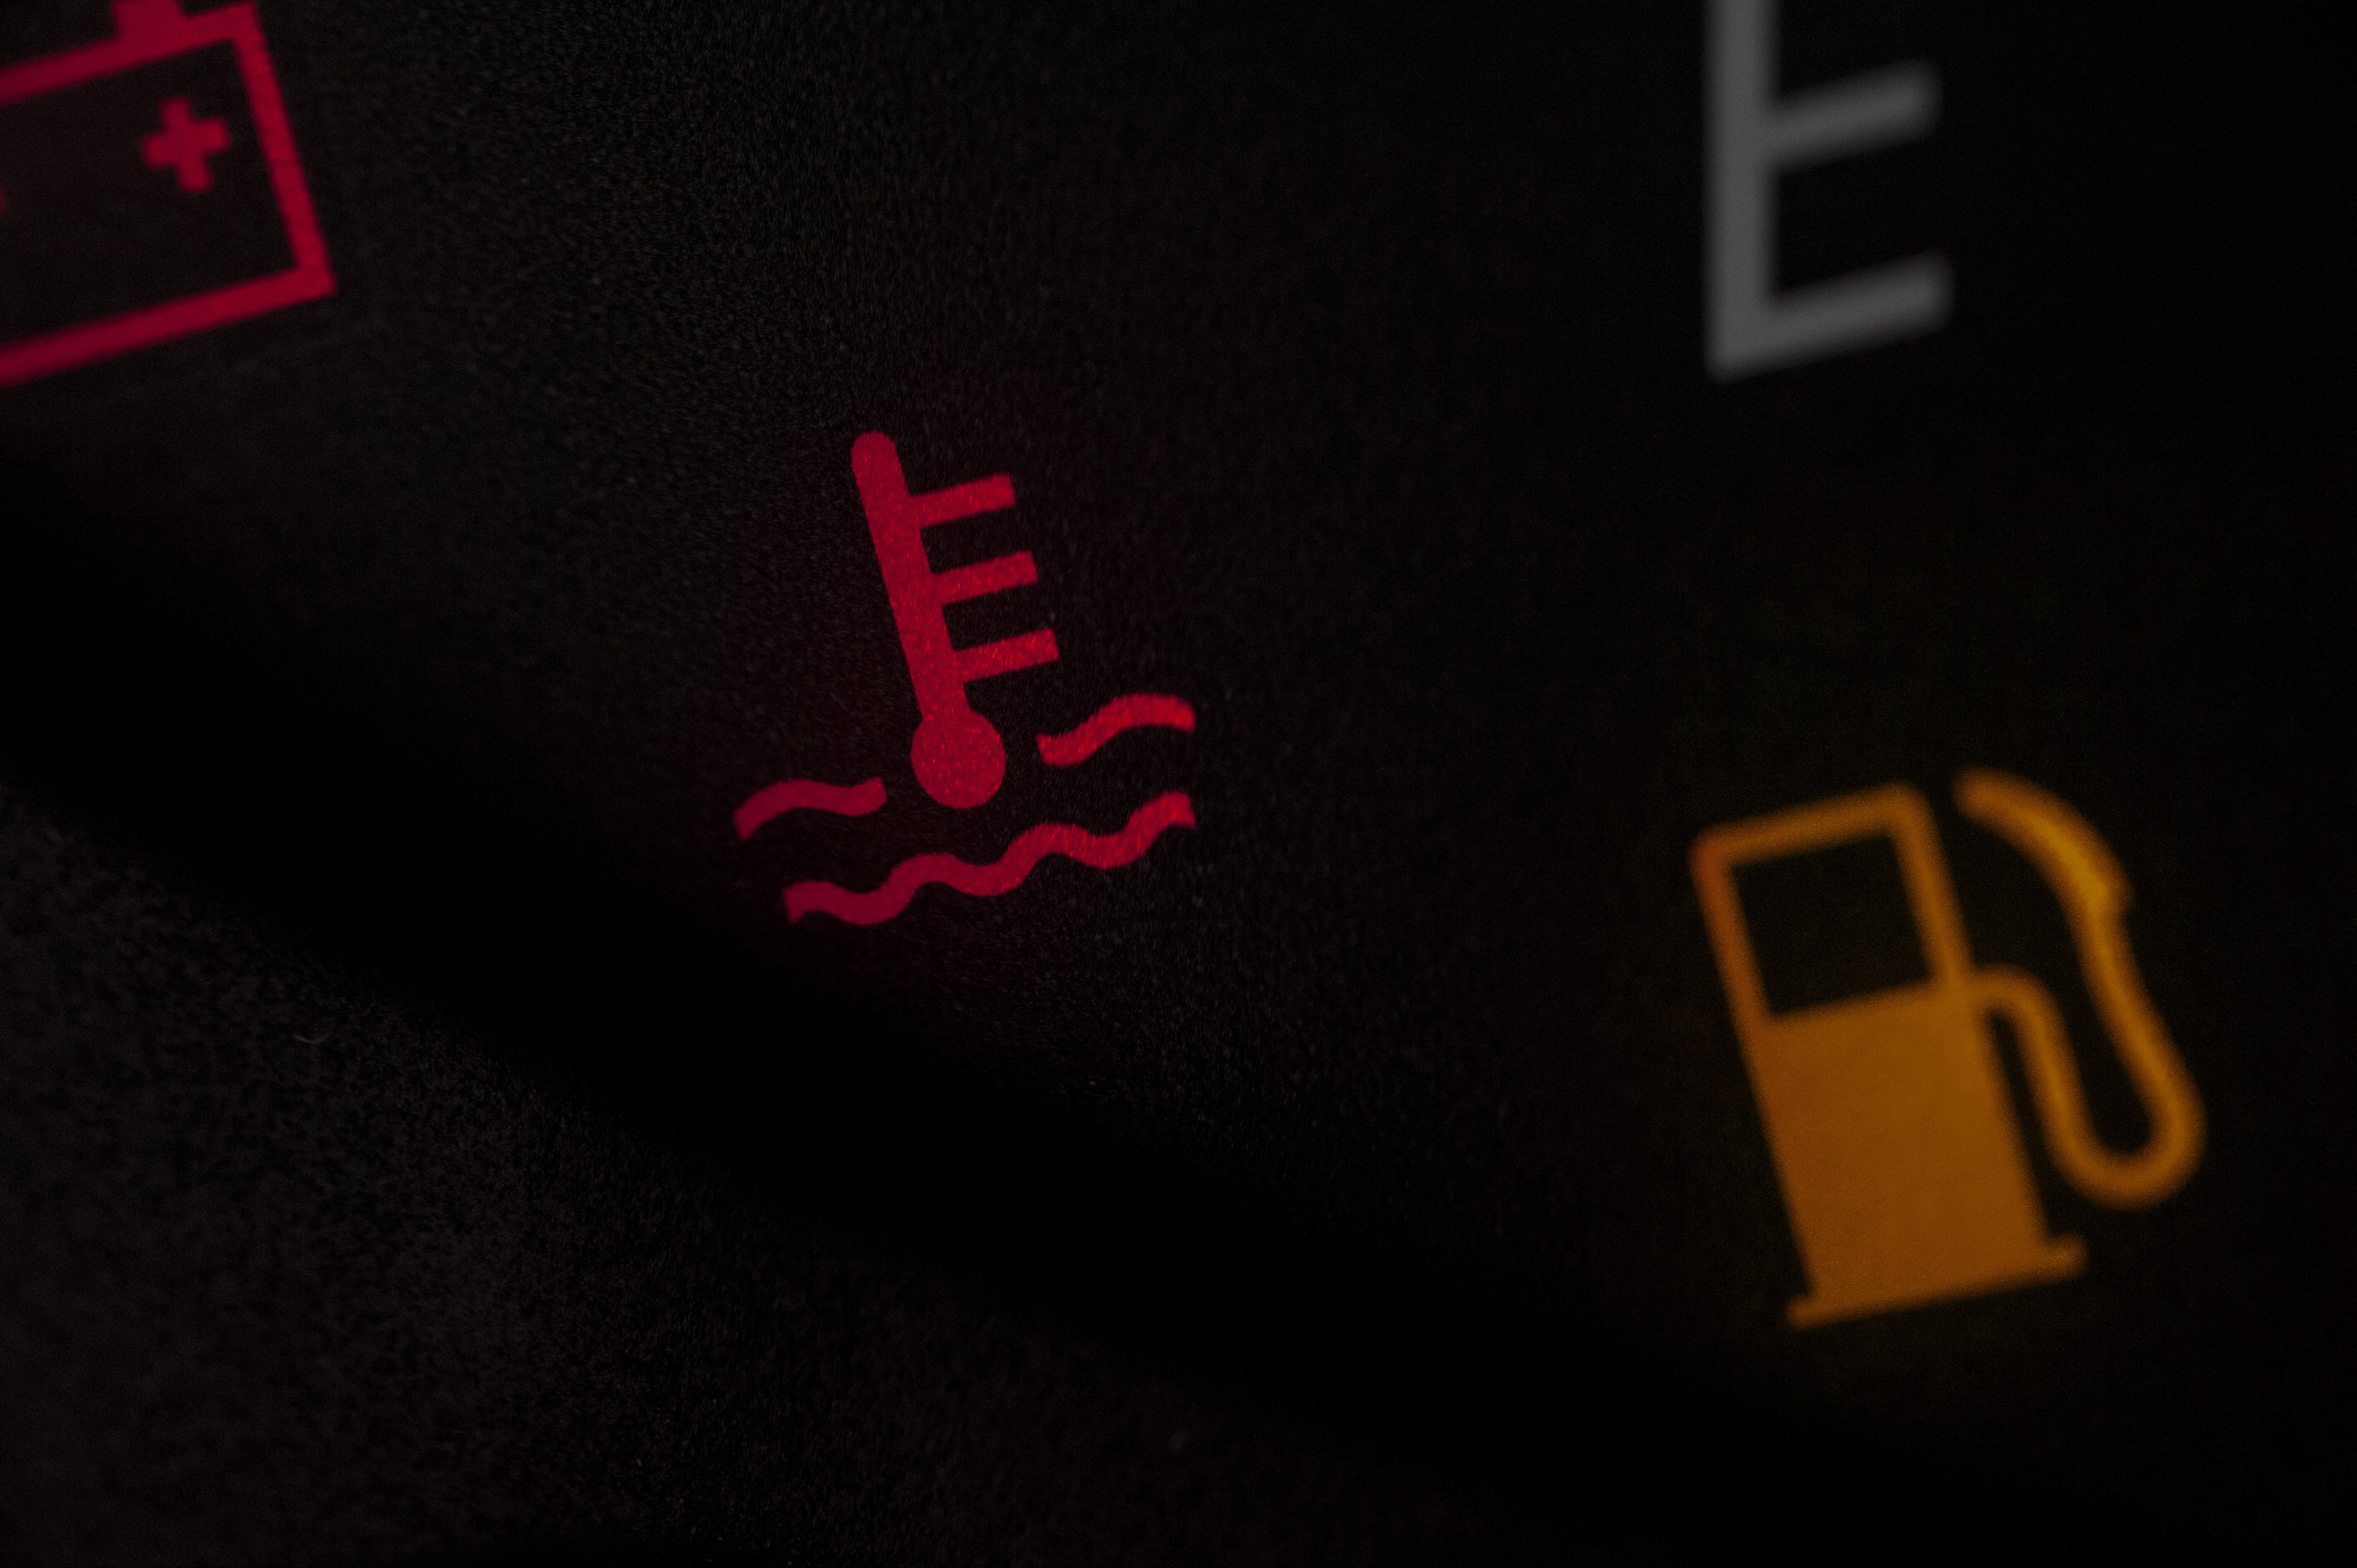 Low fuel warning light in a car illuminated on the dashboard together with a temperature waning